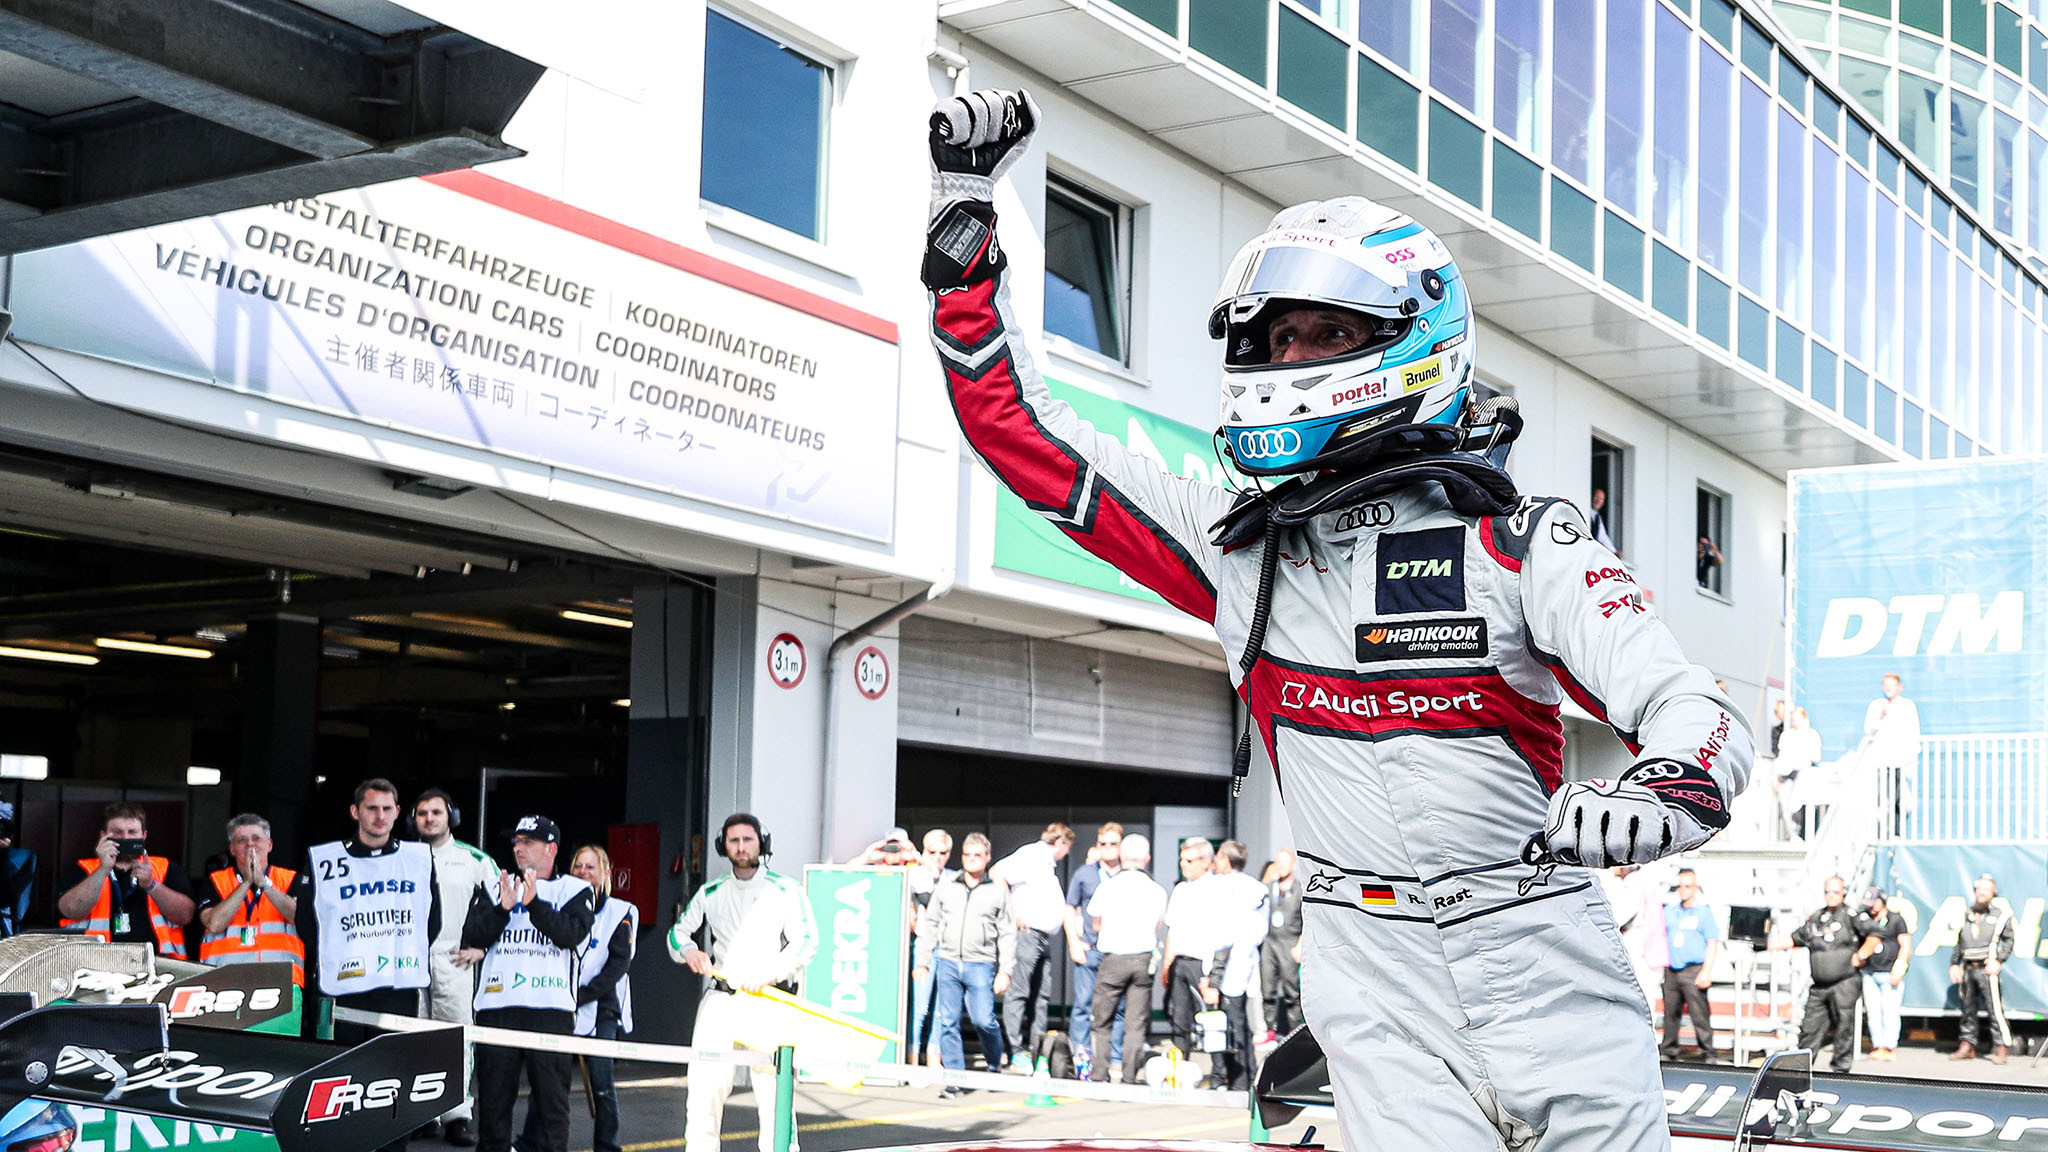 """René Rast on his second DTM title: """"I still can't believe it!"""" - TouringCarTimes"""